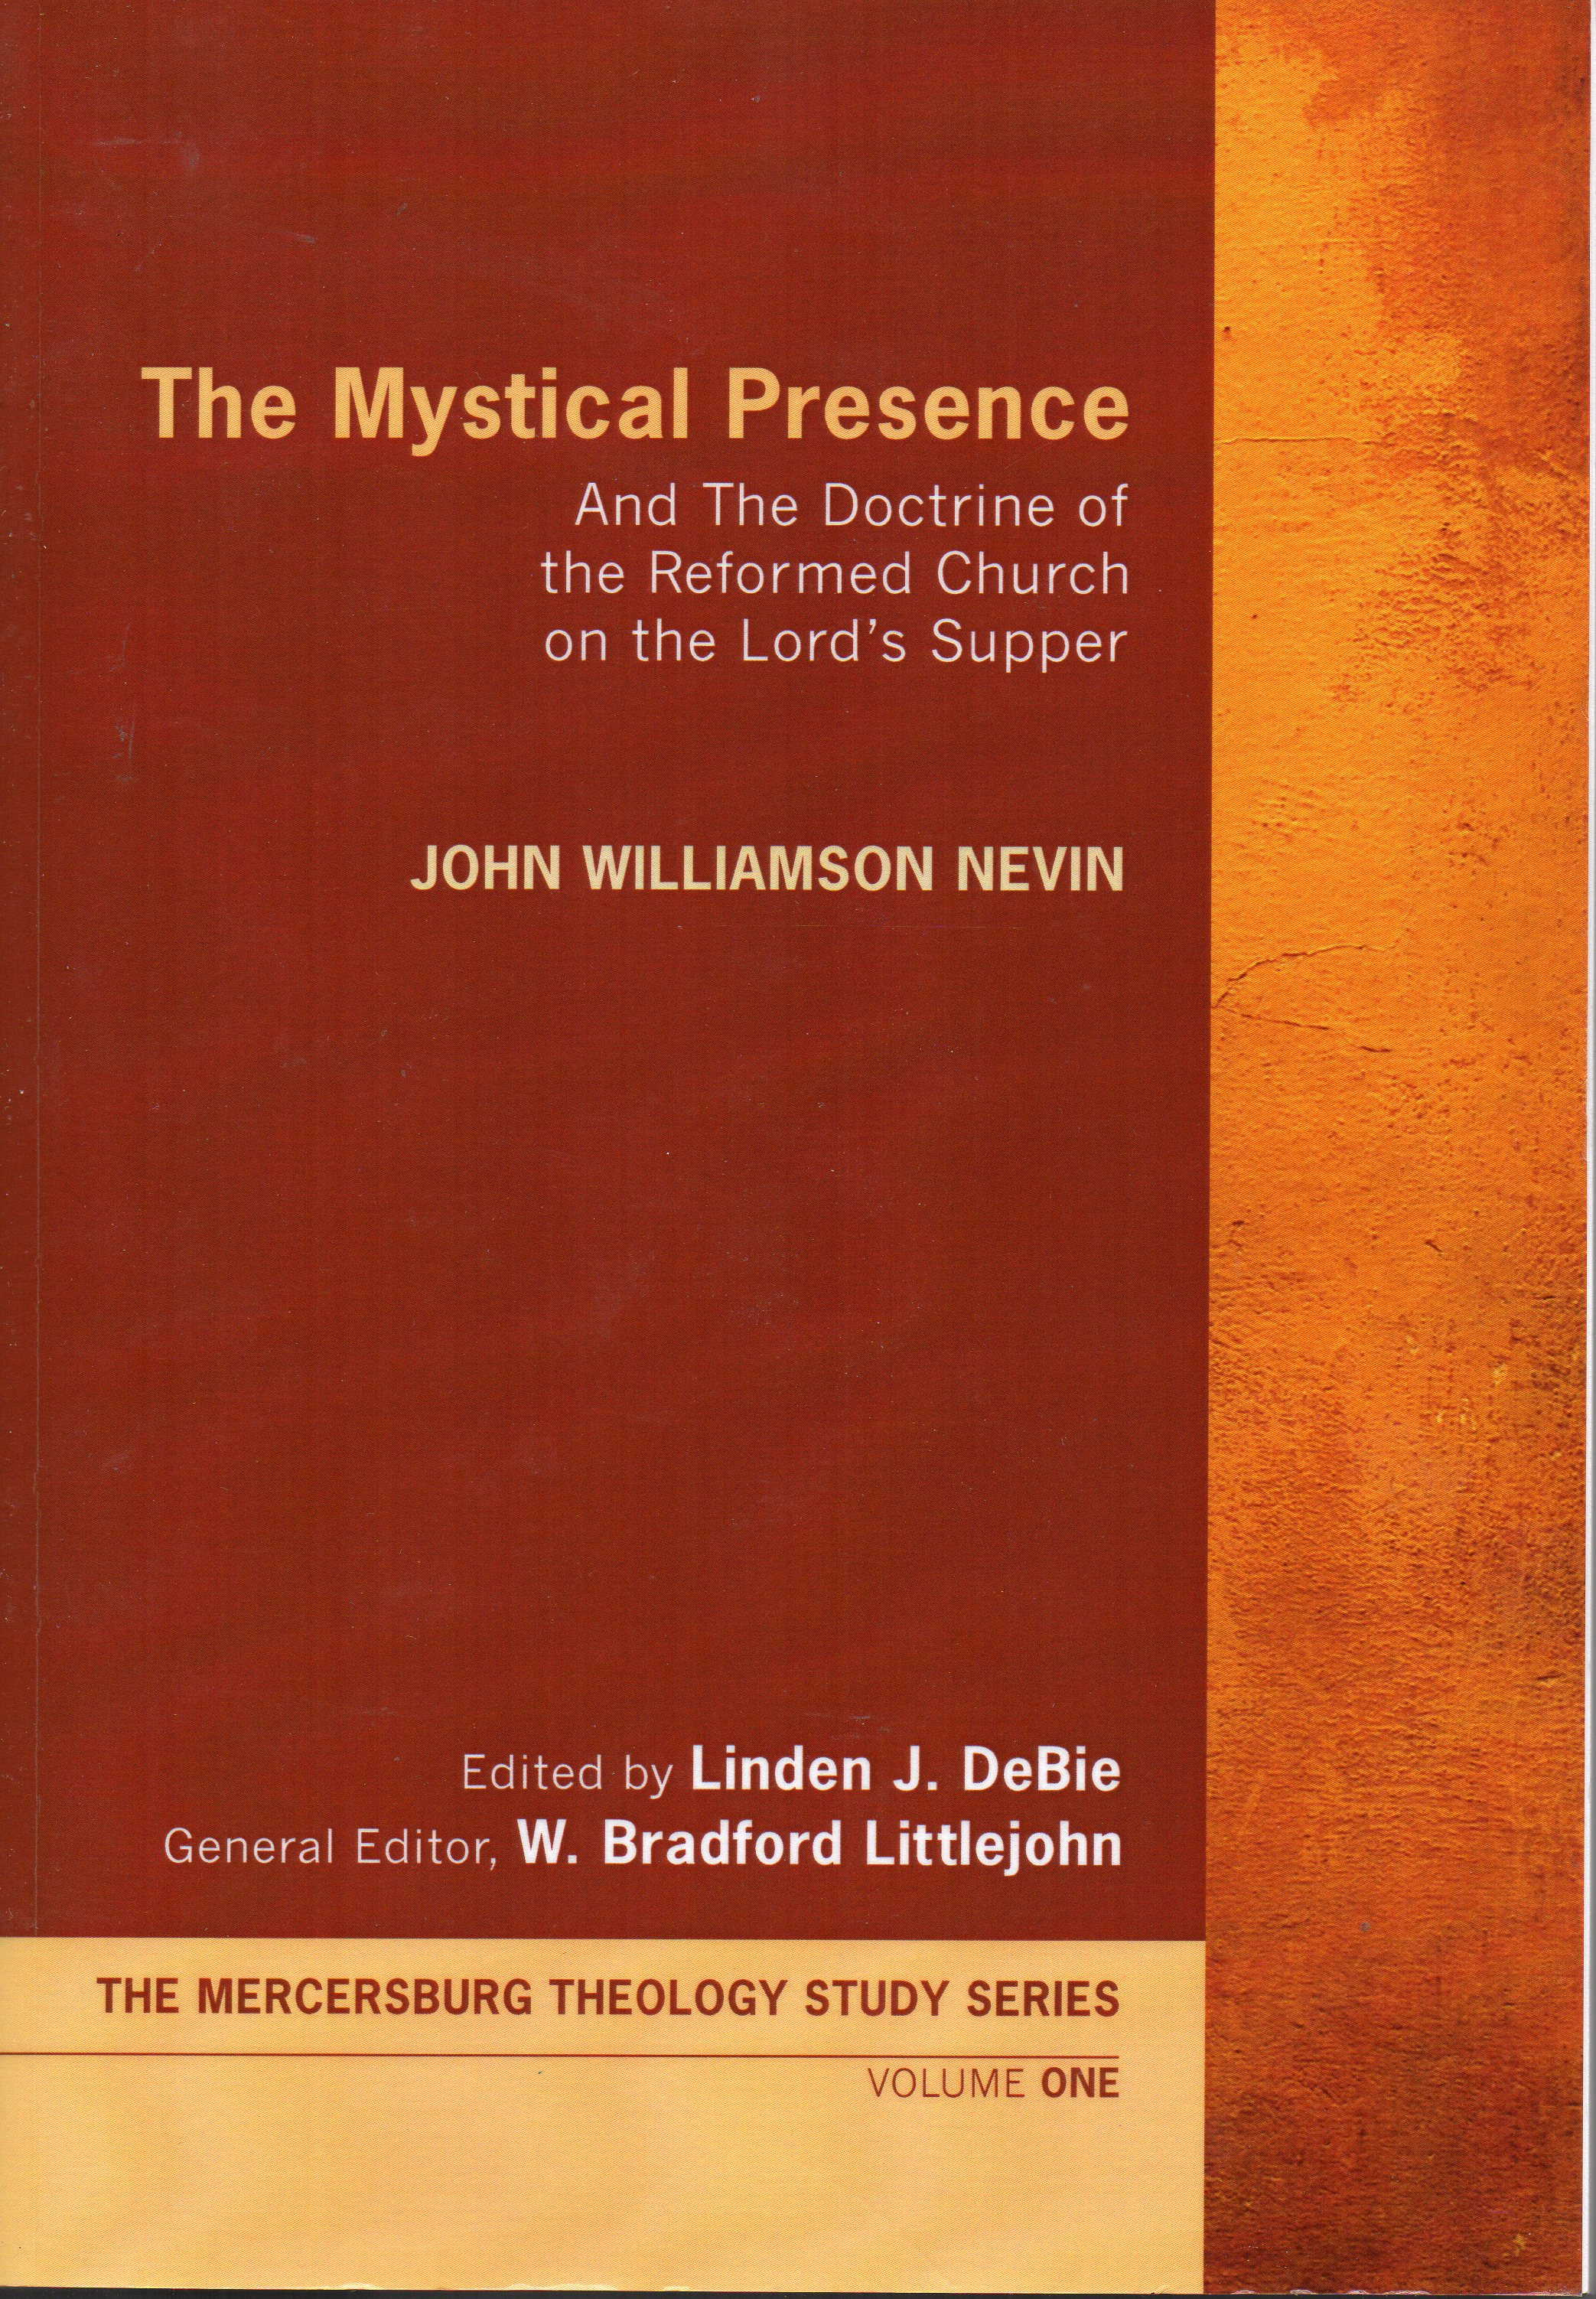 Image for The Mystical Presence: And the Doctrine of the Reformed Church on the Lord's Supper (Mercersburg Theology Study Series Vol 1)